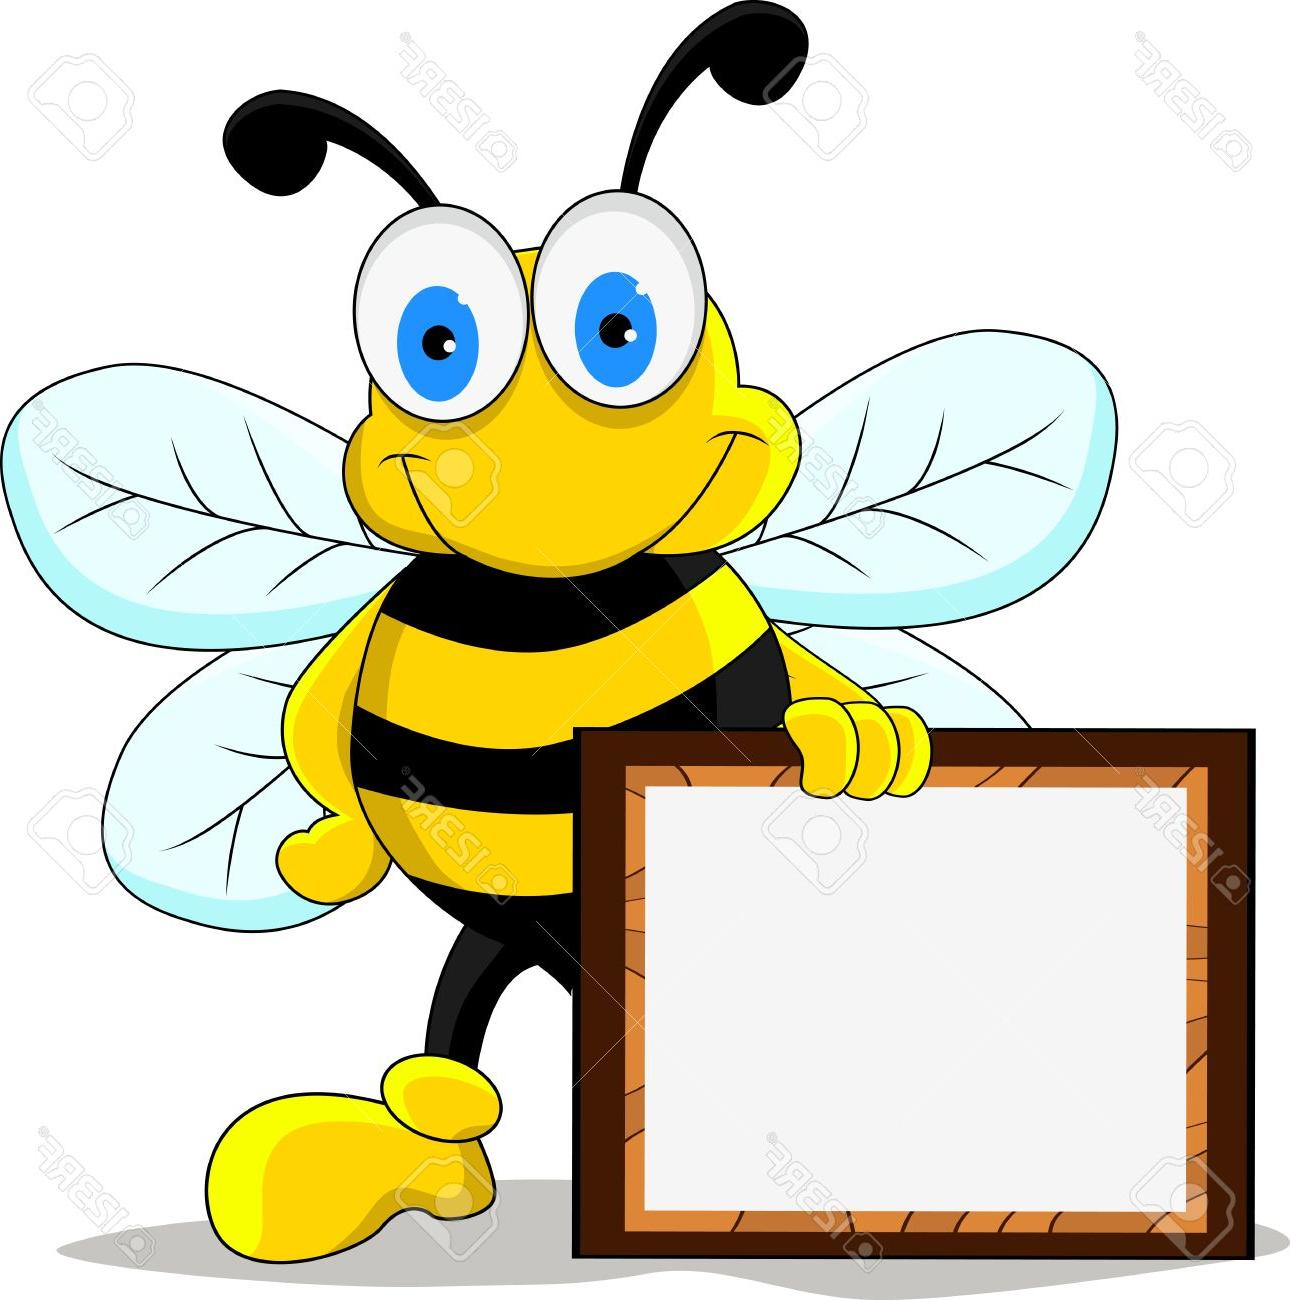 Honey Bee Drawing Cartoon at GetDrawings | Free download